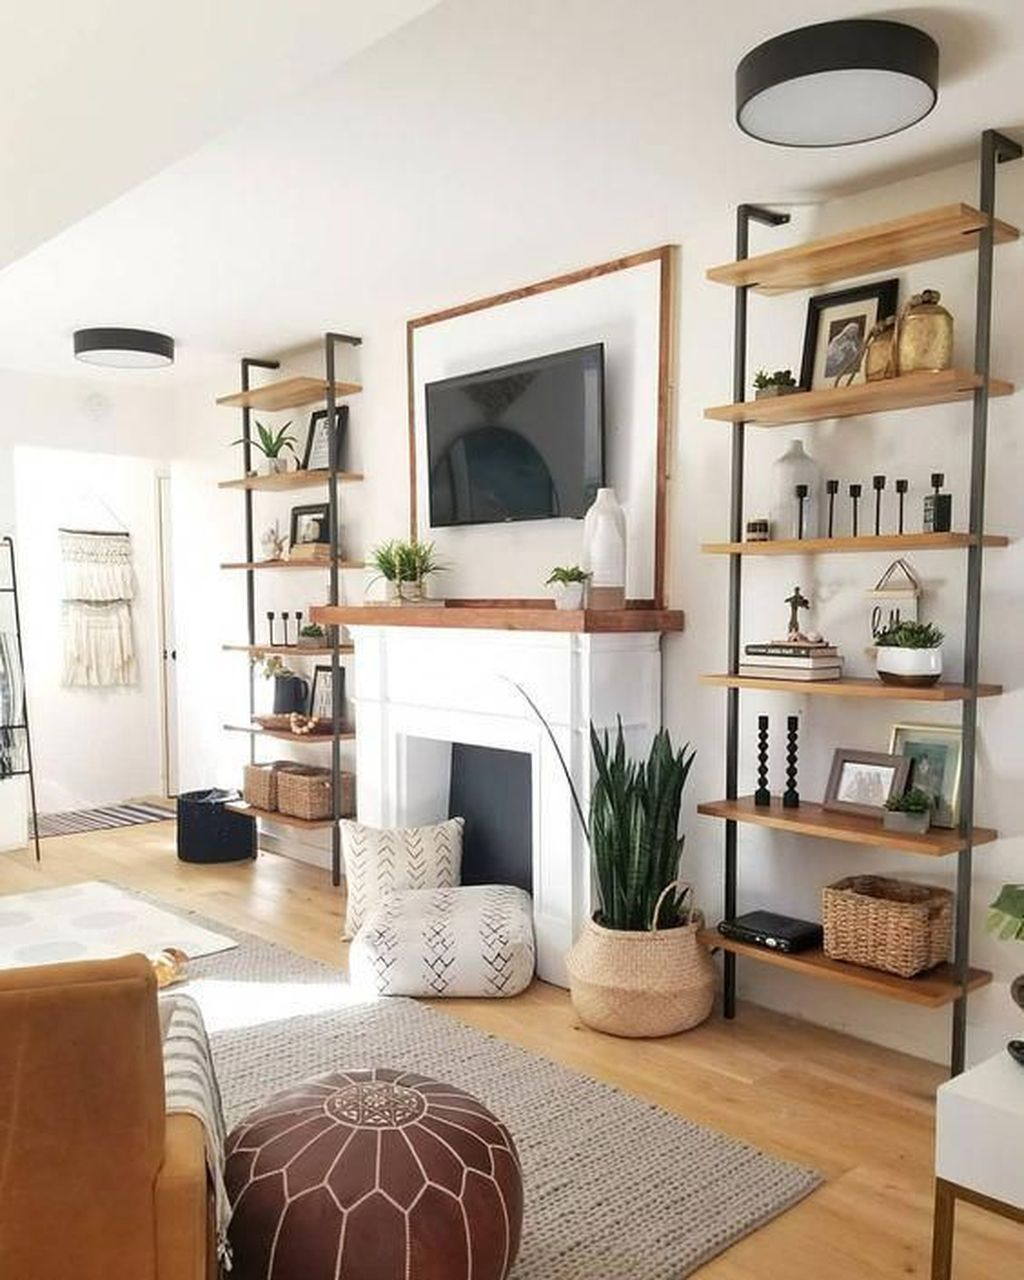 30 Enjoying Living Room Decor Ideas That You Need To Have Room Furniture Design Minimalist Living Room Living Room Decor Modern Living room ideas storage